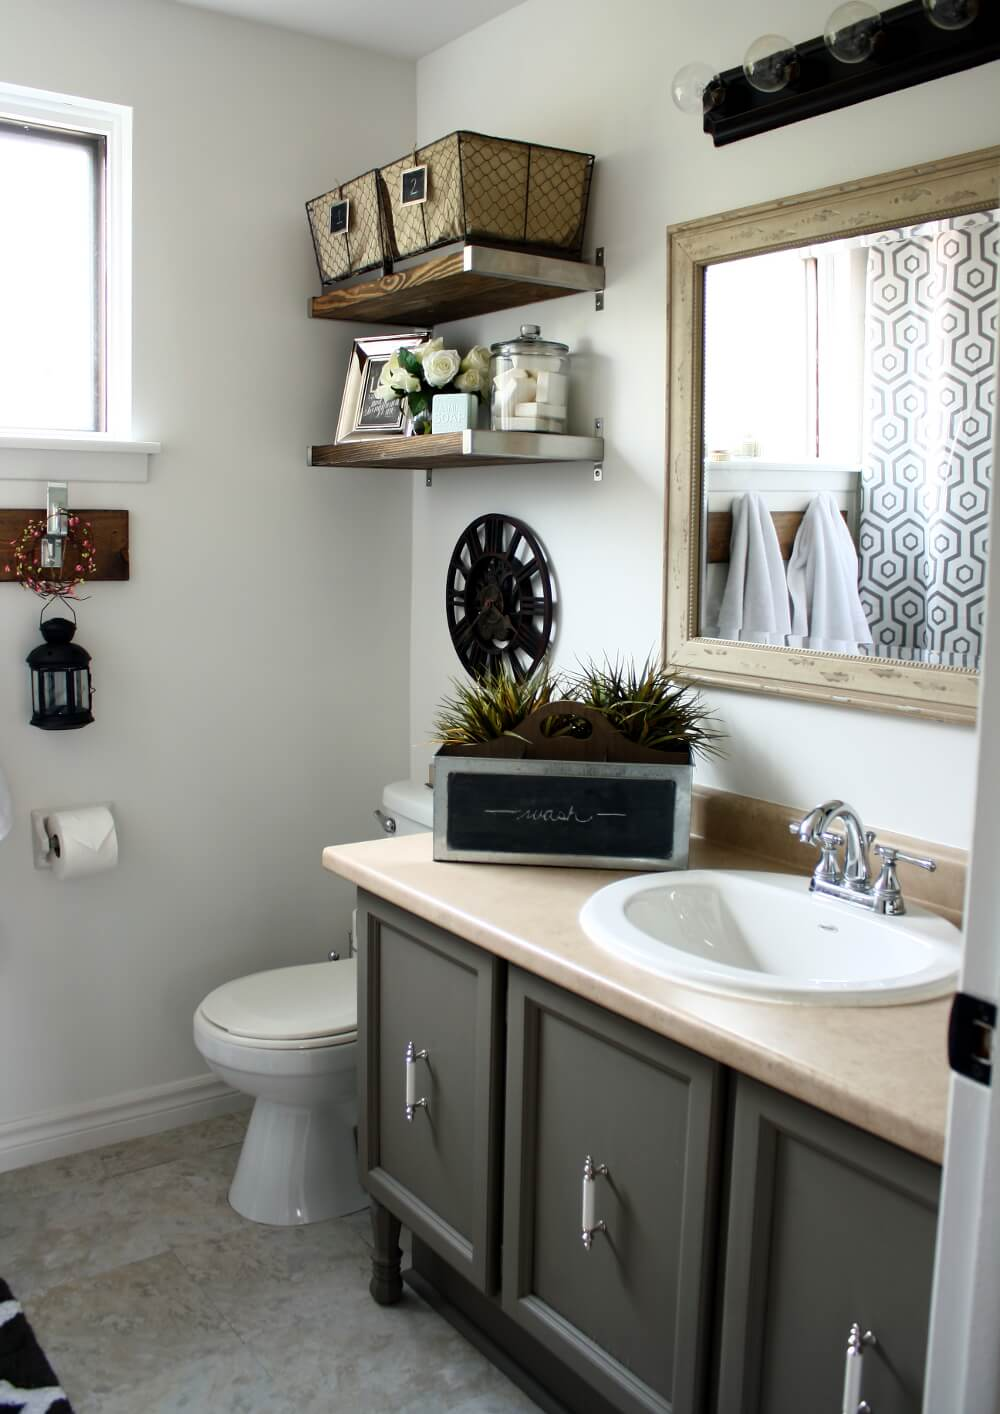 32 Best Small Bathroom Design Ideas and Decorations for 2020 on Bathroom Ideas Small  id=50856